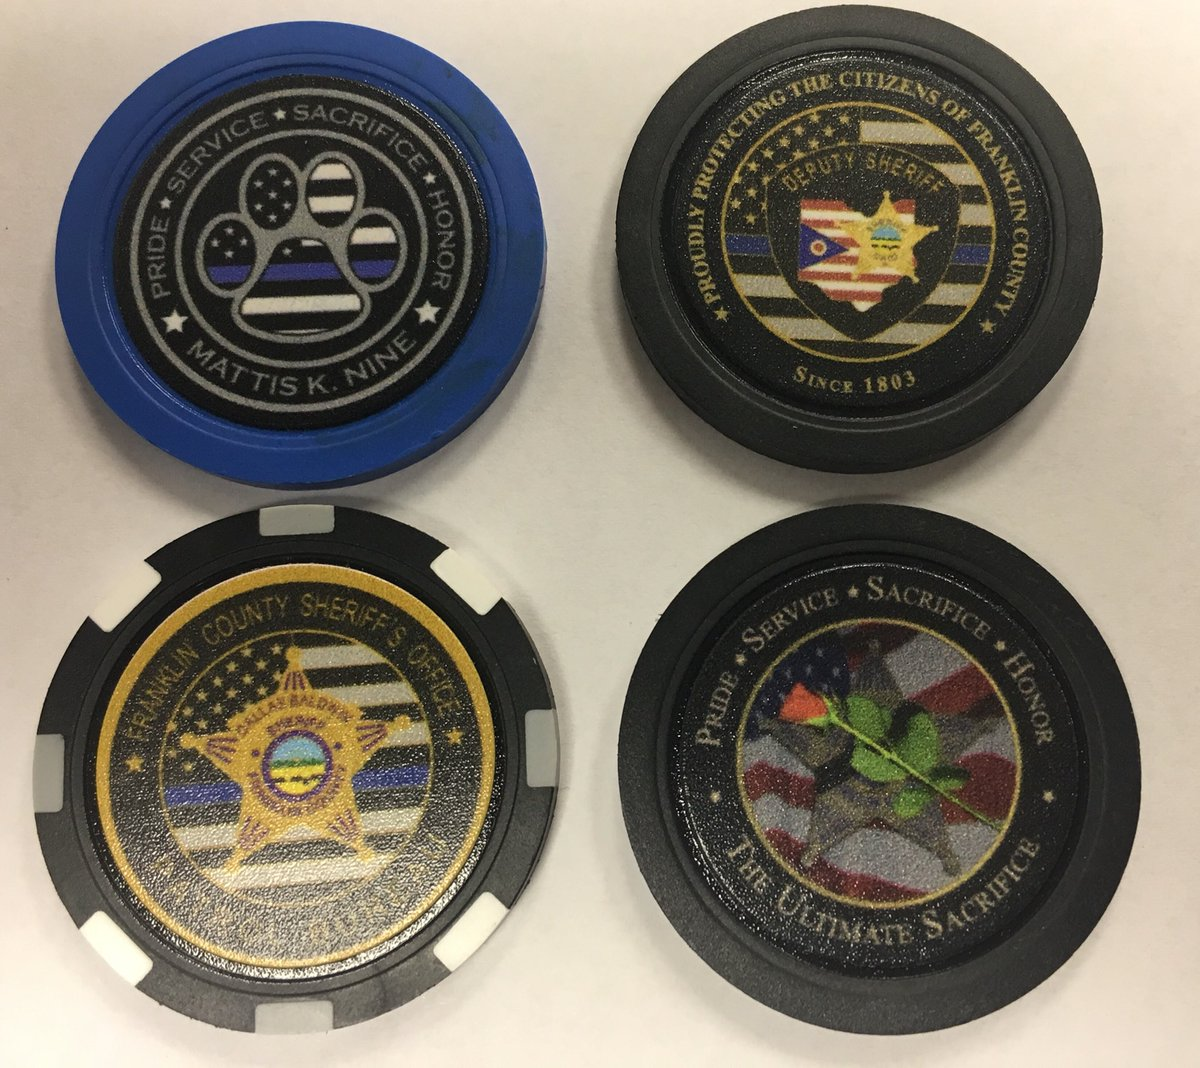 CHALLENGE COIN GIVEAWAY WEDNESDAY! Who wants a chance at winning?? Such a hit last week WE are doing it 2nd week in a row, here are 4 Poker Chips from our office! We are looking for new followers, so after 125 Retweets we will randomly pick a winner for the the chips. Good Luck! <br>http://pic.twitter.com/wN1wnWeEyP